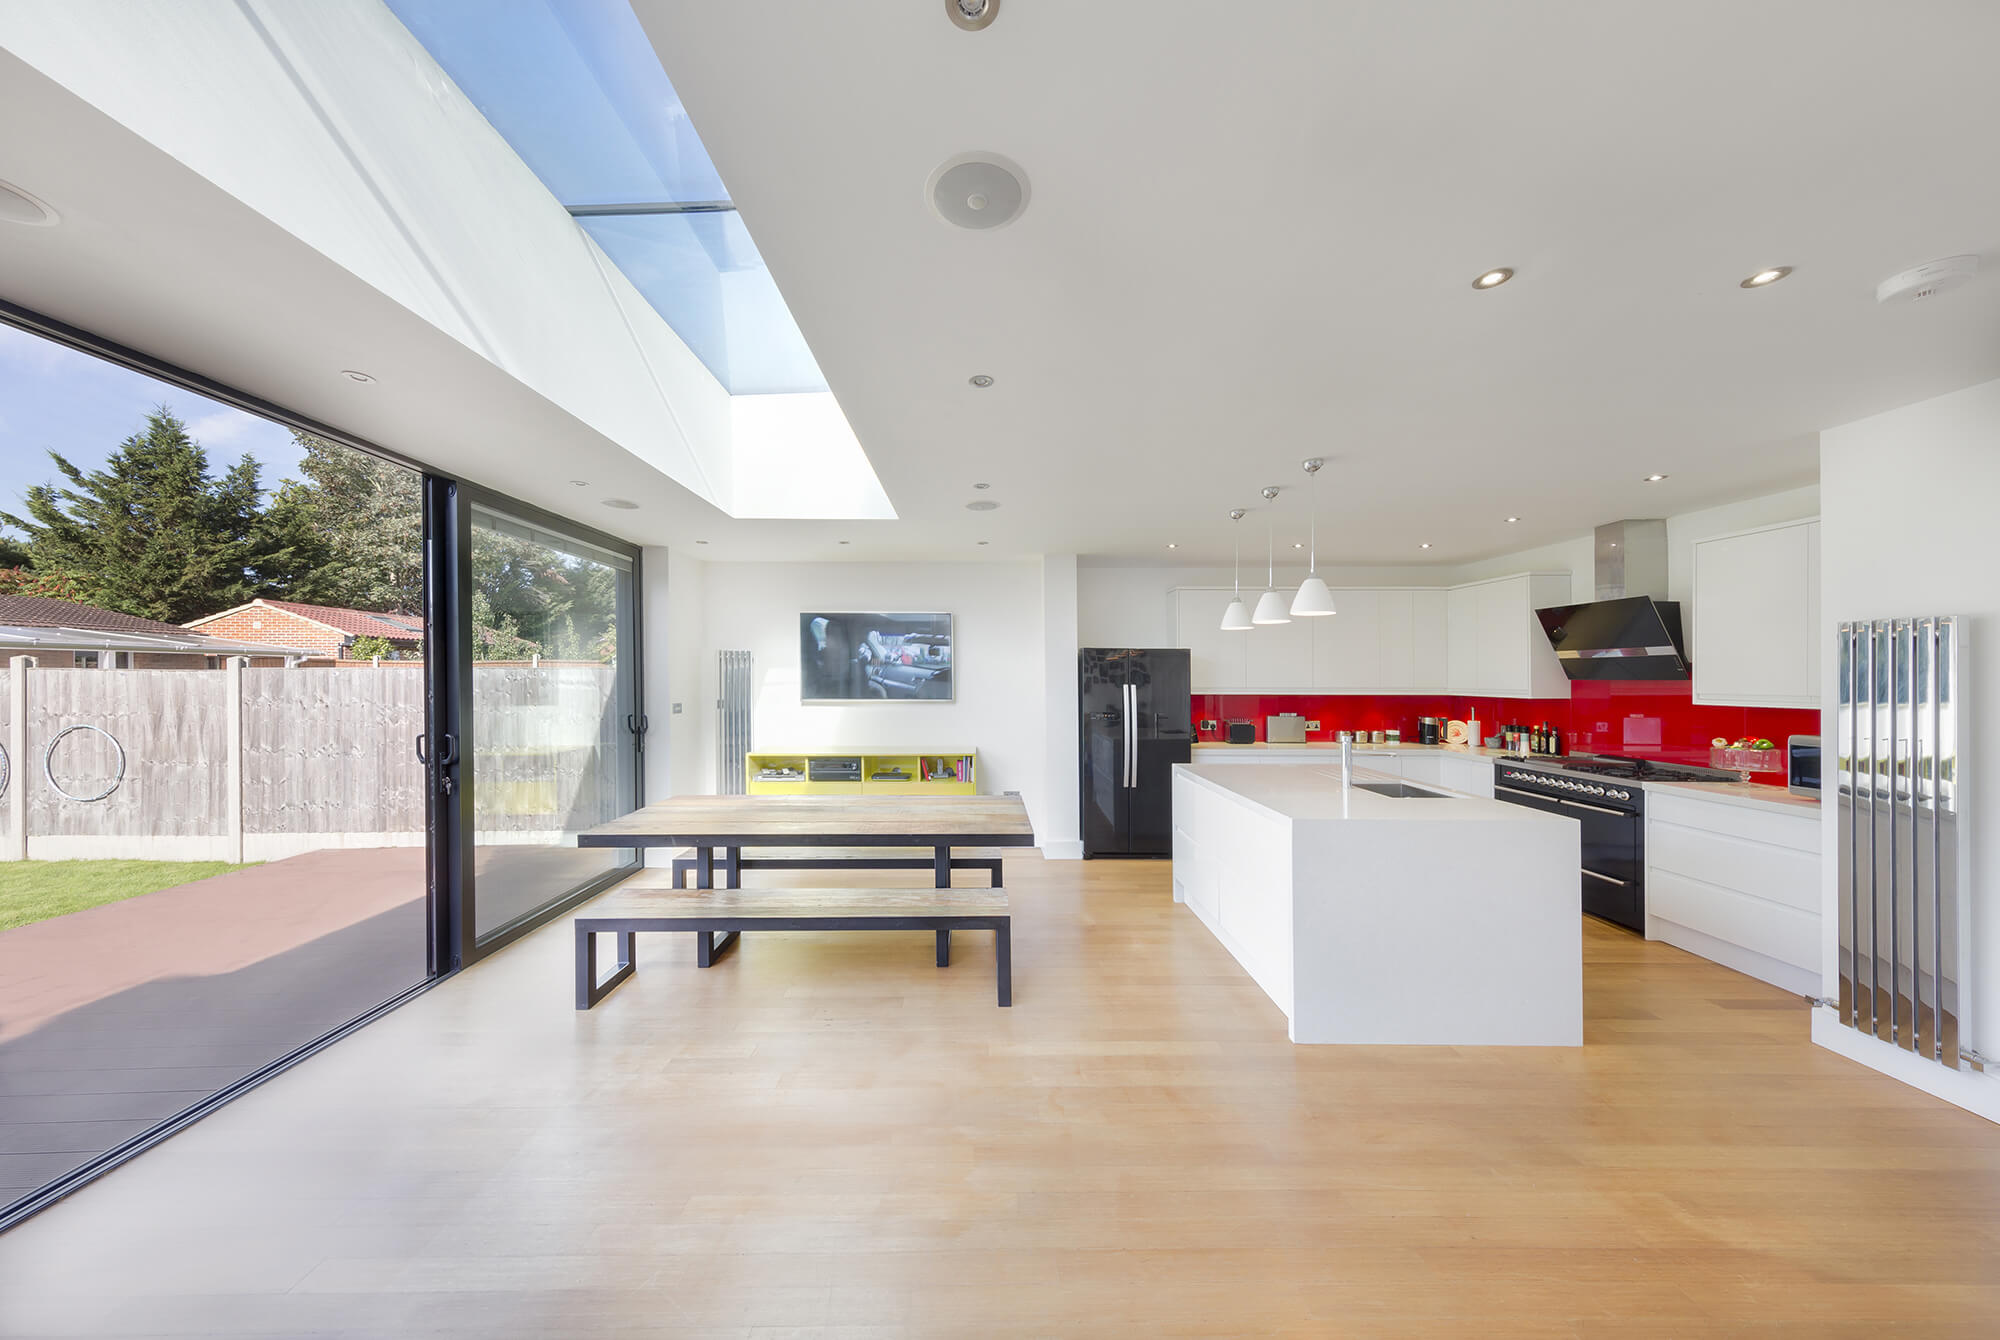 Marguerite Murdoch Architects - Based in Teddington, Richmond Upon Thames - Bright and Spacious Renovation and Extension